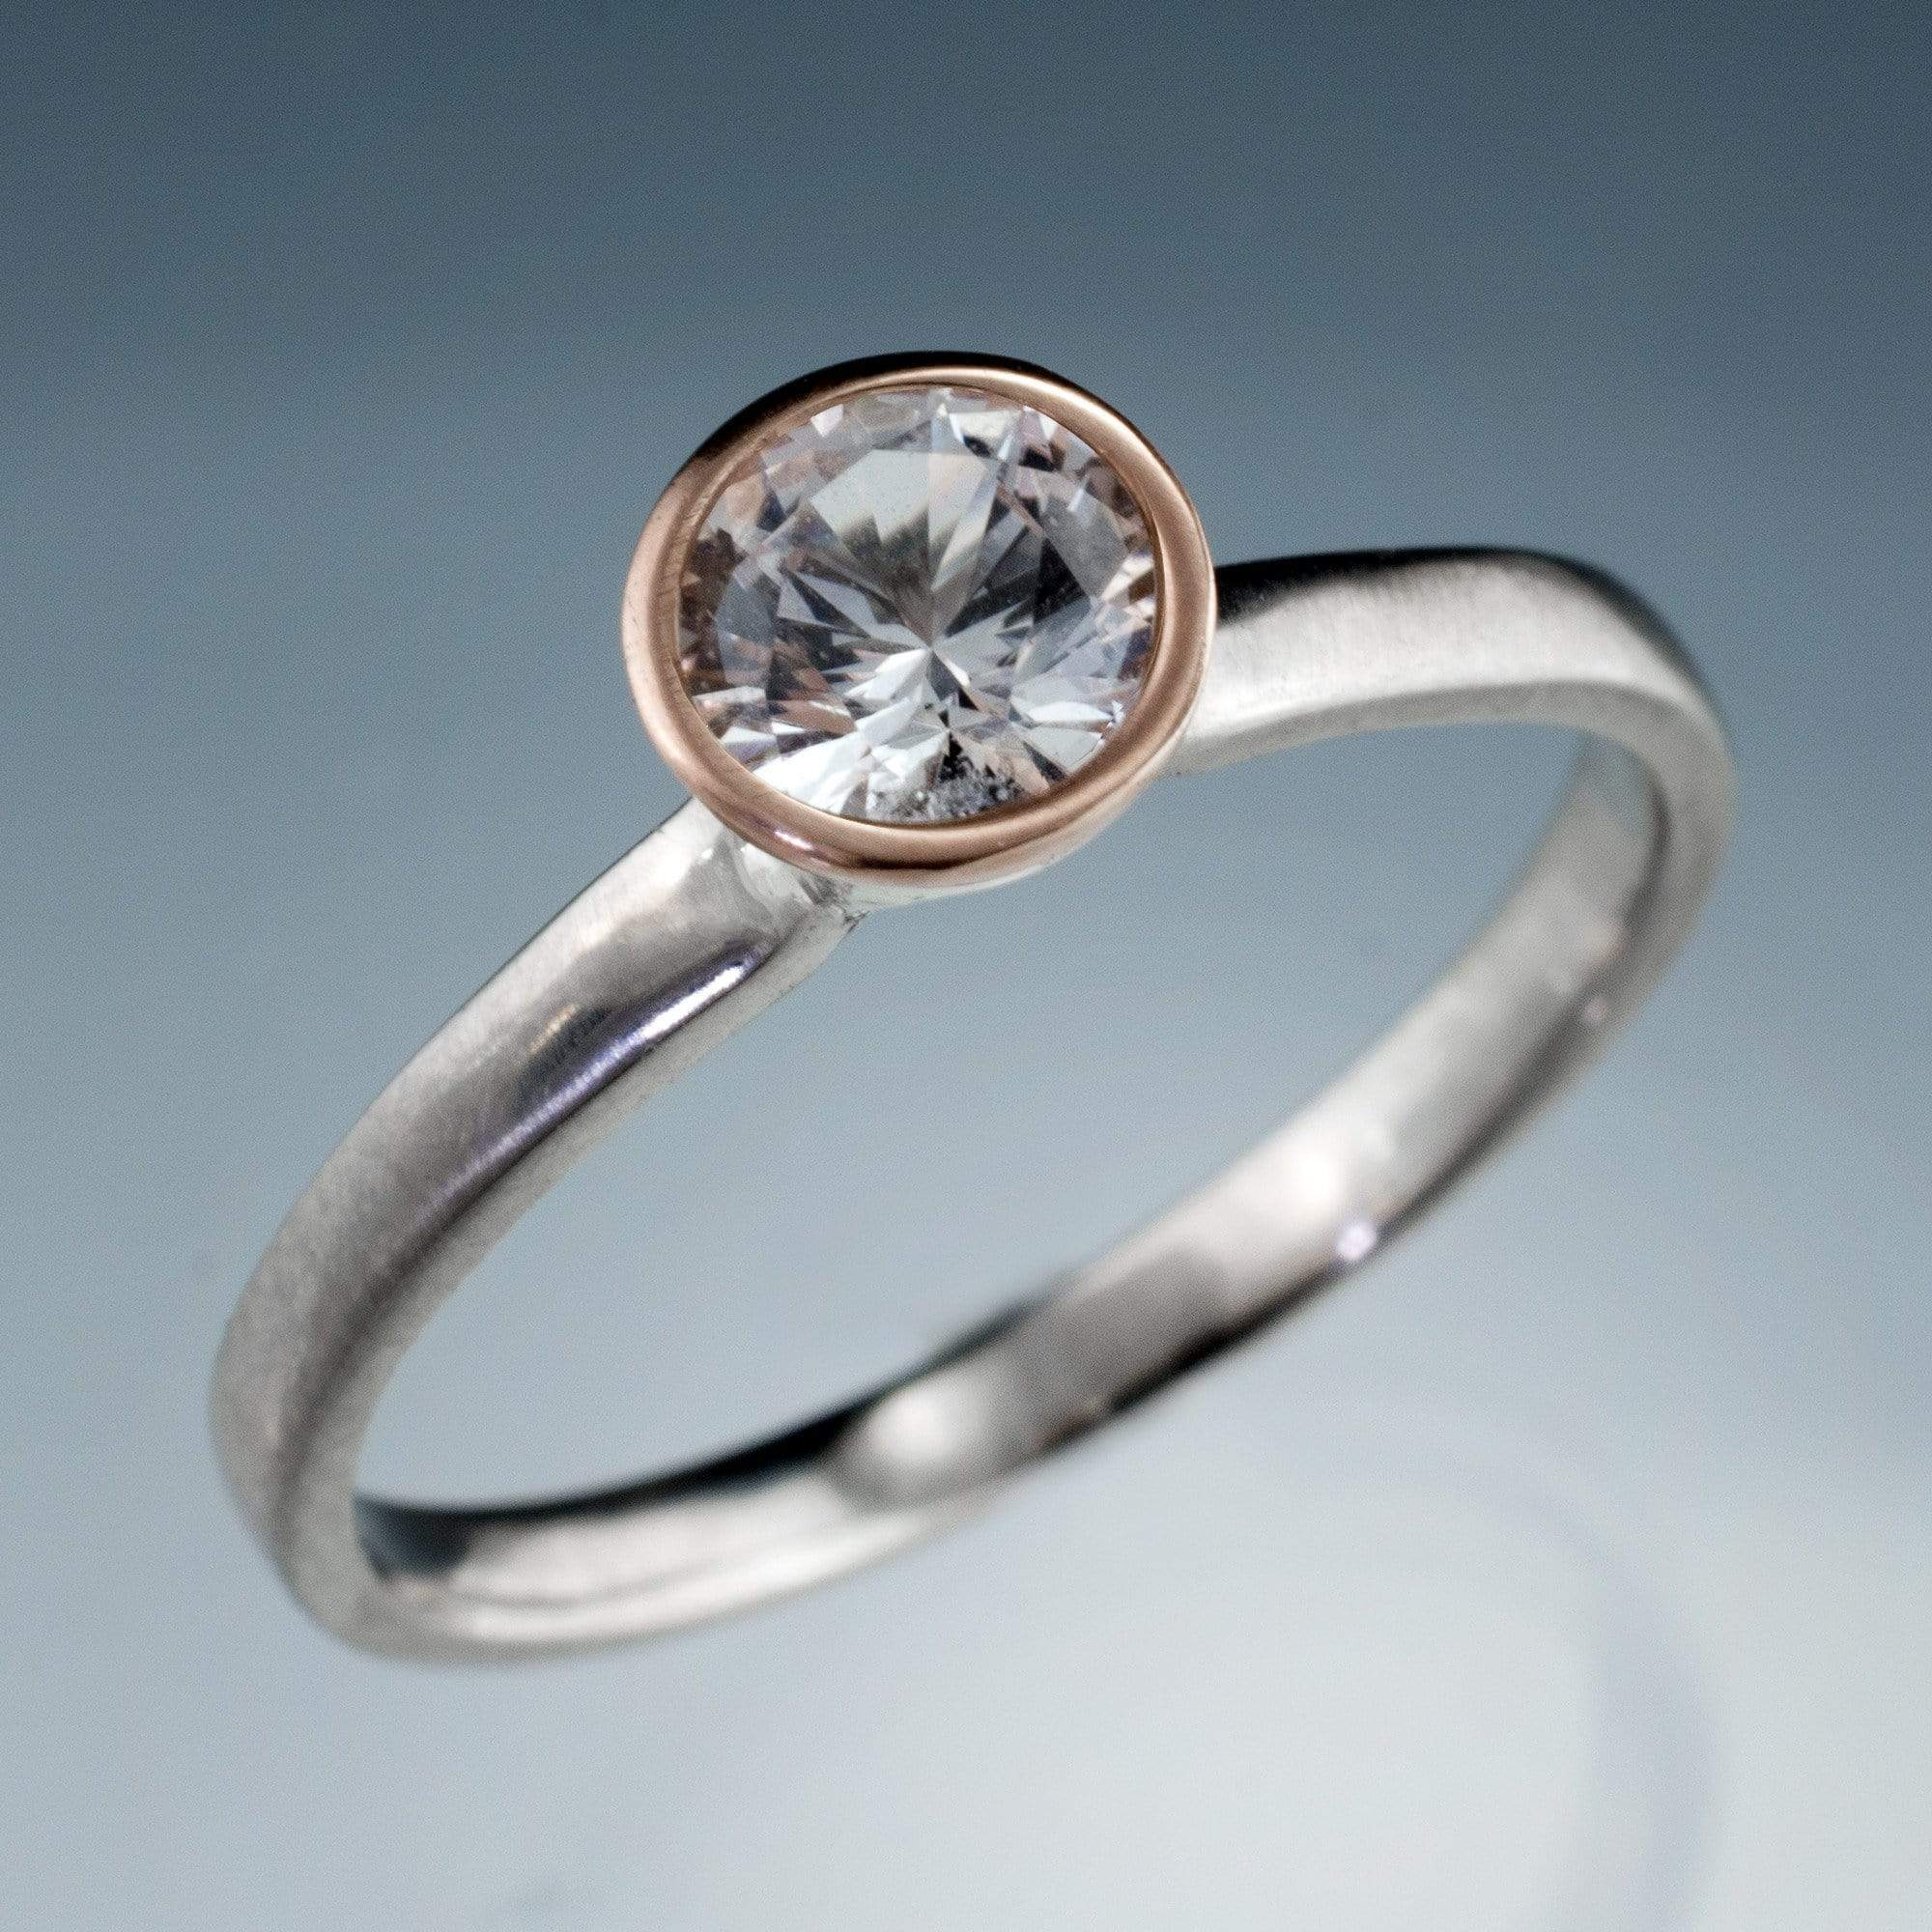 Mixed Metal White Sapphire Bezel Engagement Ring - by Nodeform